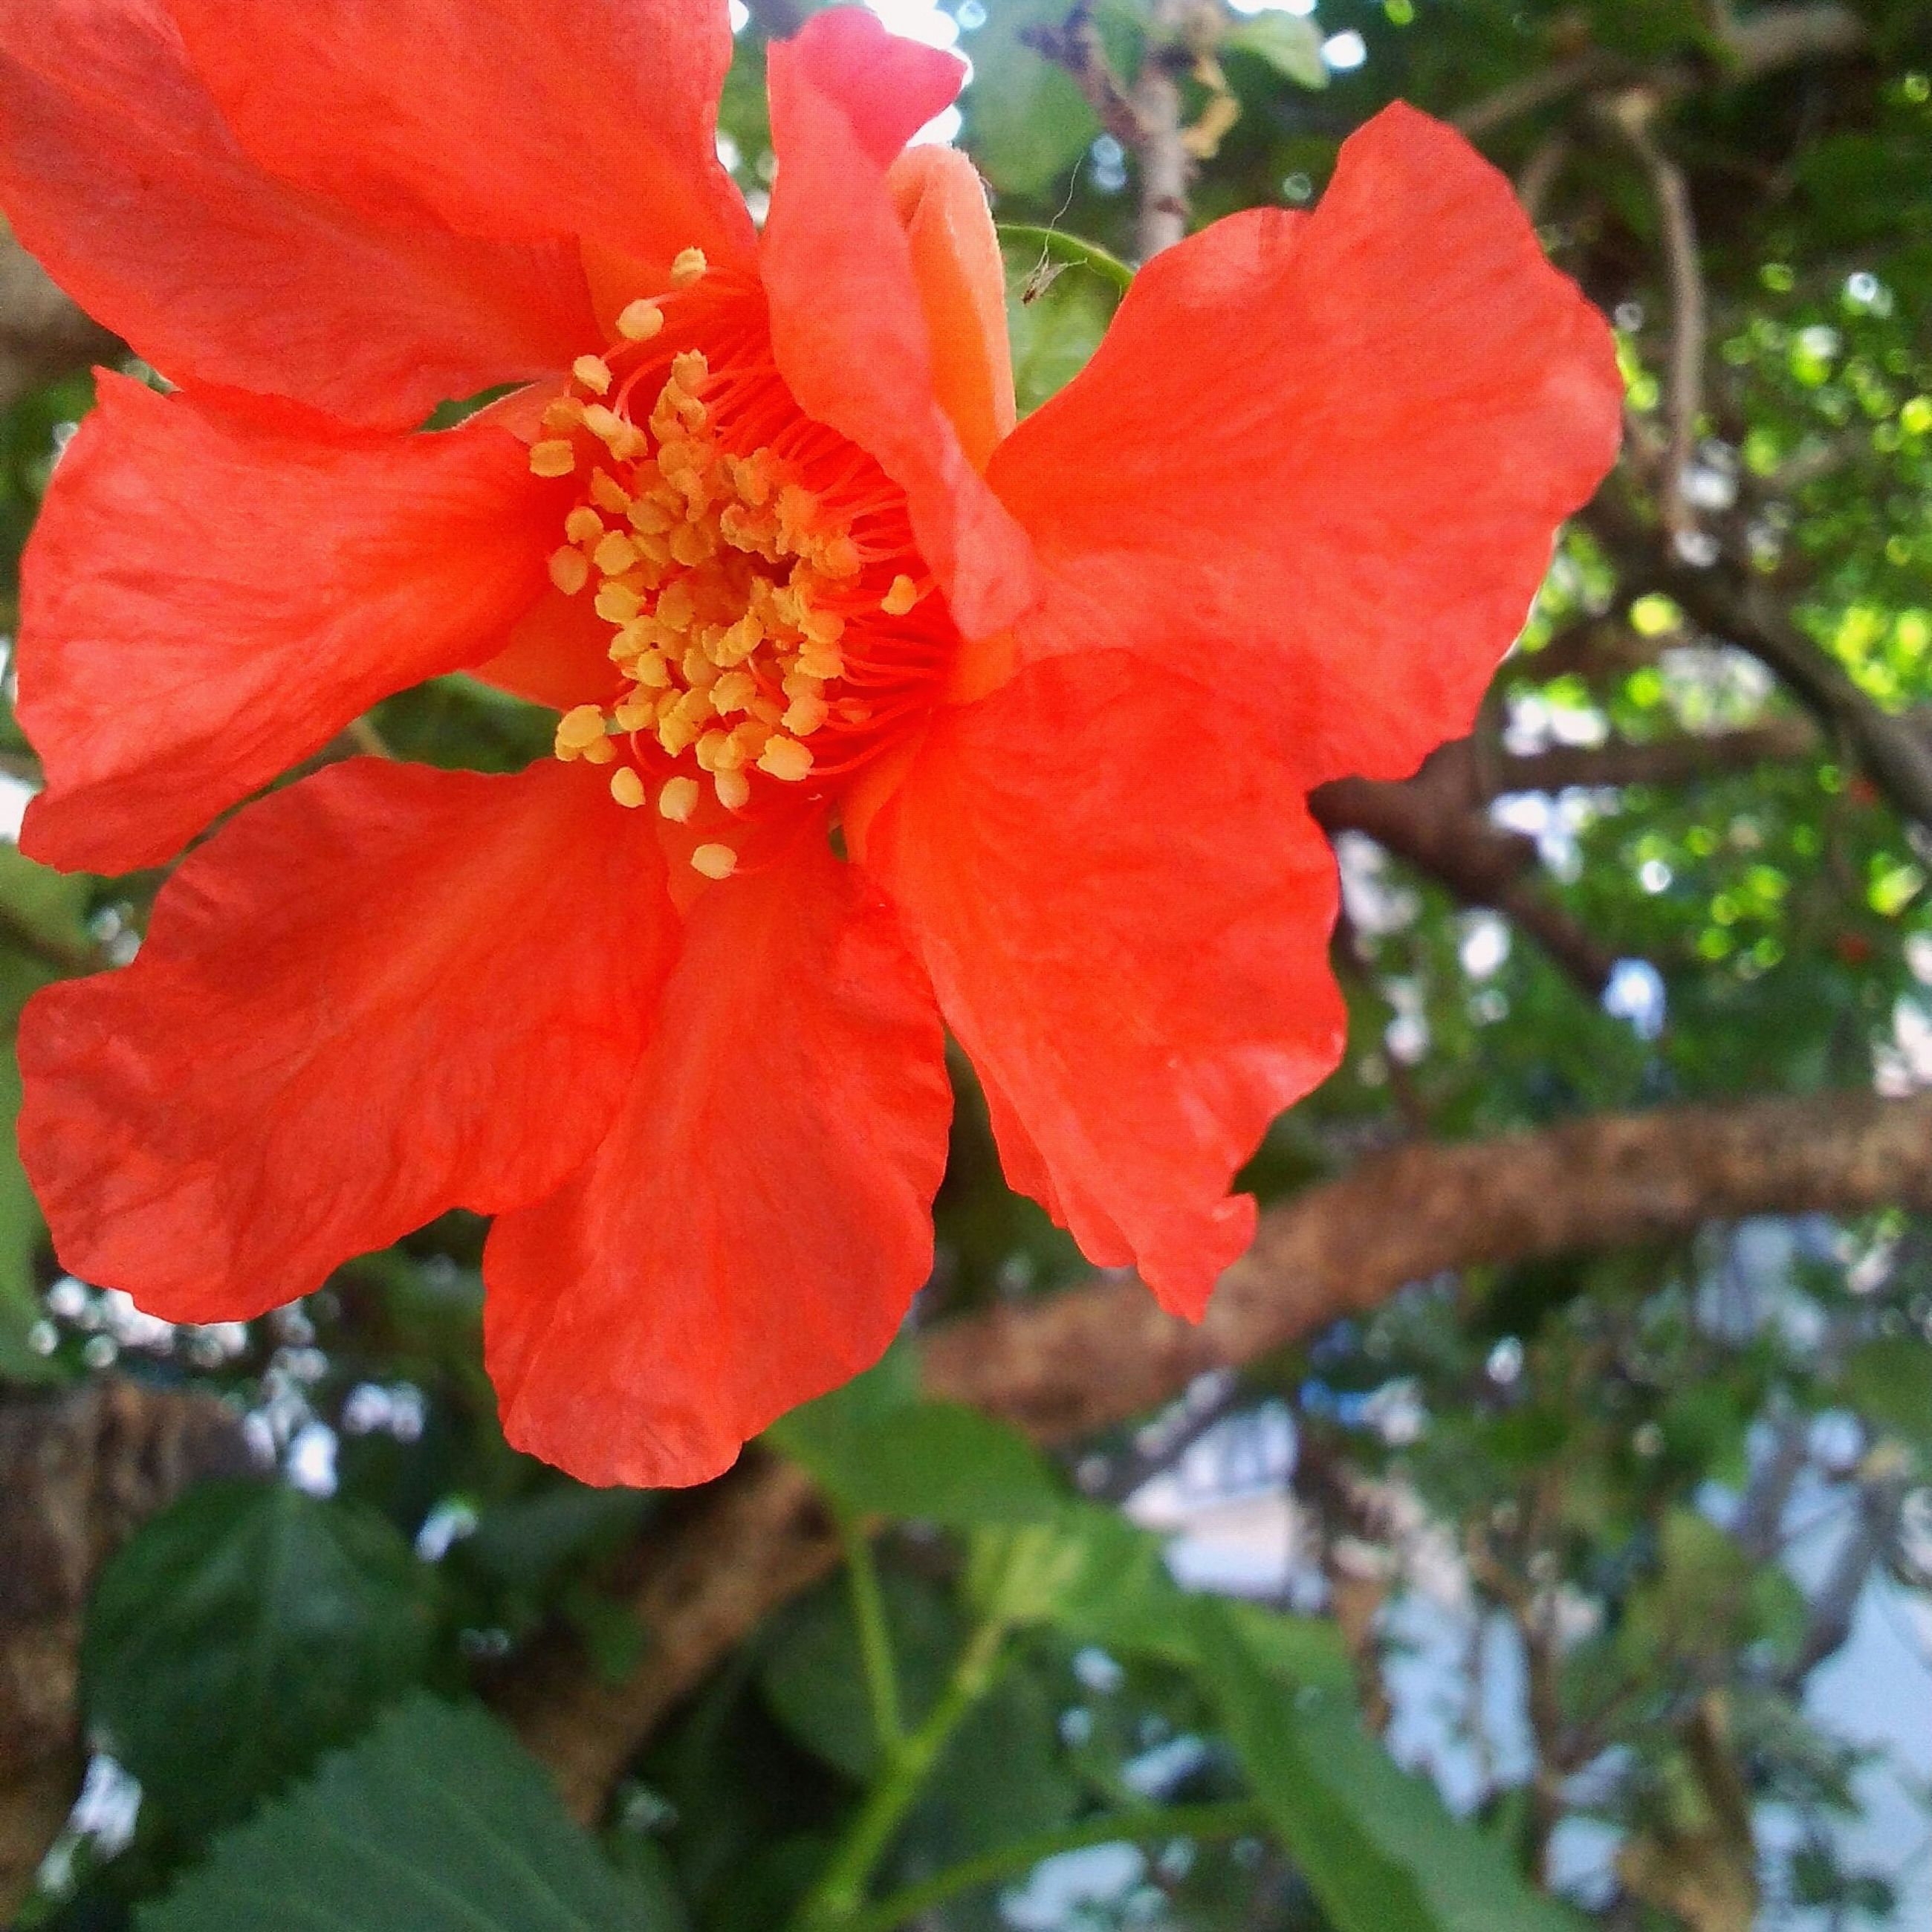 flower, freshness, petal, growth, fragility, red, flower head, beauty in nature, focus on foreground, close-up, nature, blooming, plant, leaf, stamen, in bloom, blossom, day, park - man made space, outdoors